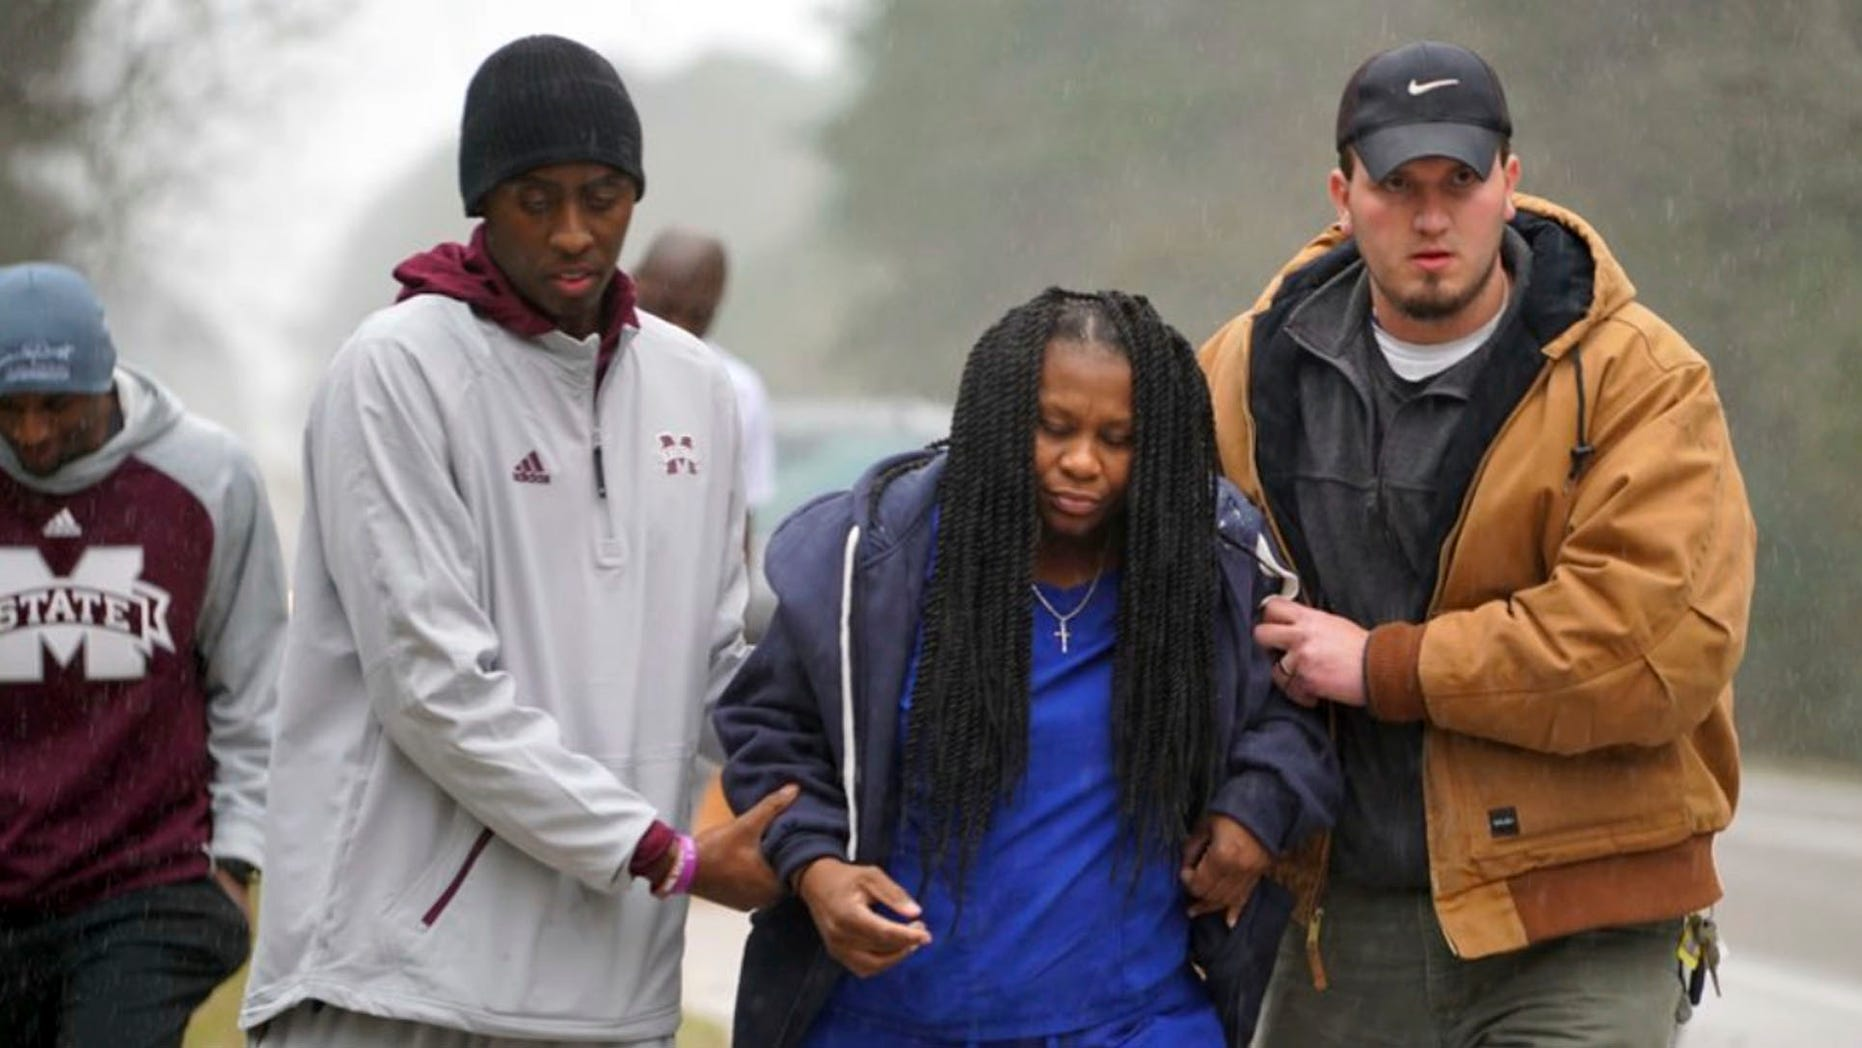 In this image taken Friday, Jan. 6, 2016, and released by Mississippi State Athletics, Mississippi State trainer Ryan Dotson, left, and an unidentified man aid a motorist who's car flipped over in front of the team bus in Mississippi, as they were heading to LSU for an NCAA college basketball game. (Drew Walker/Mississippi State Athletics via AP)